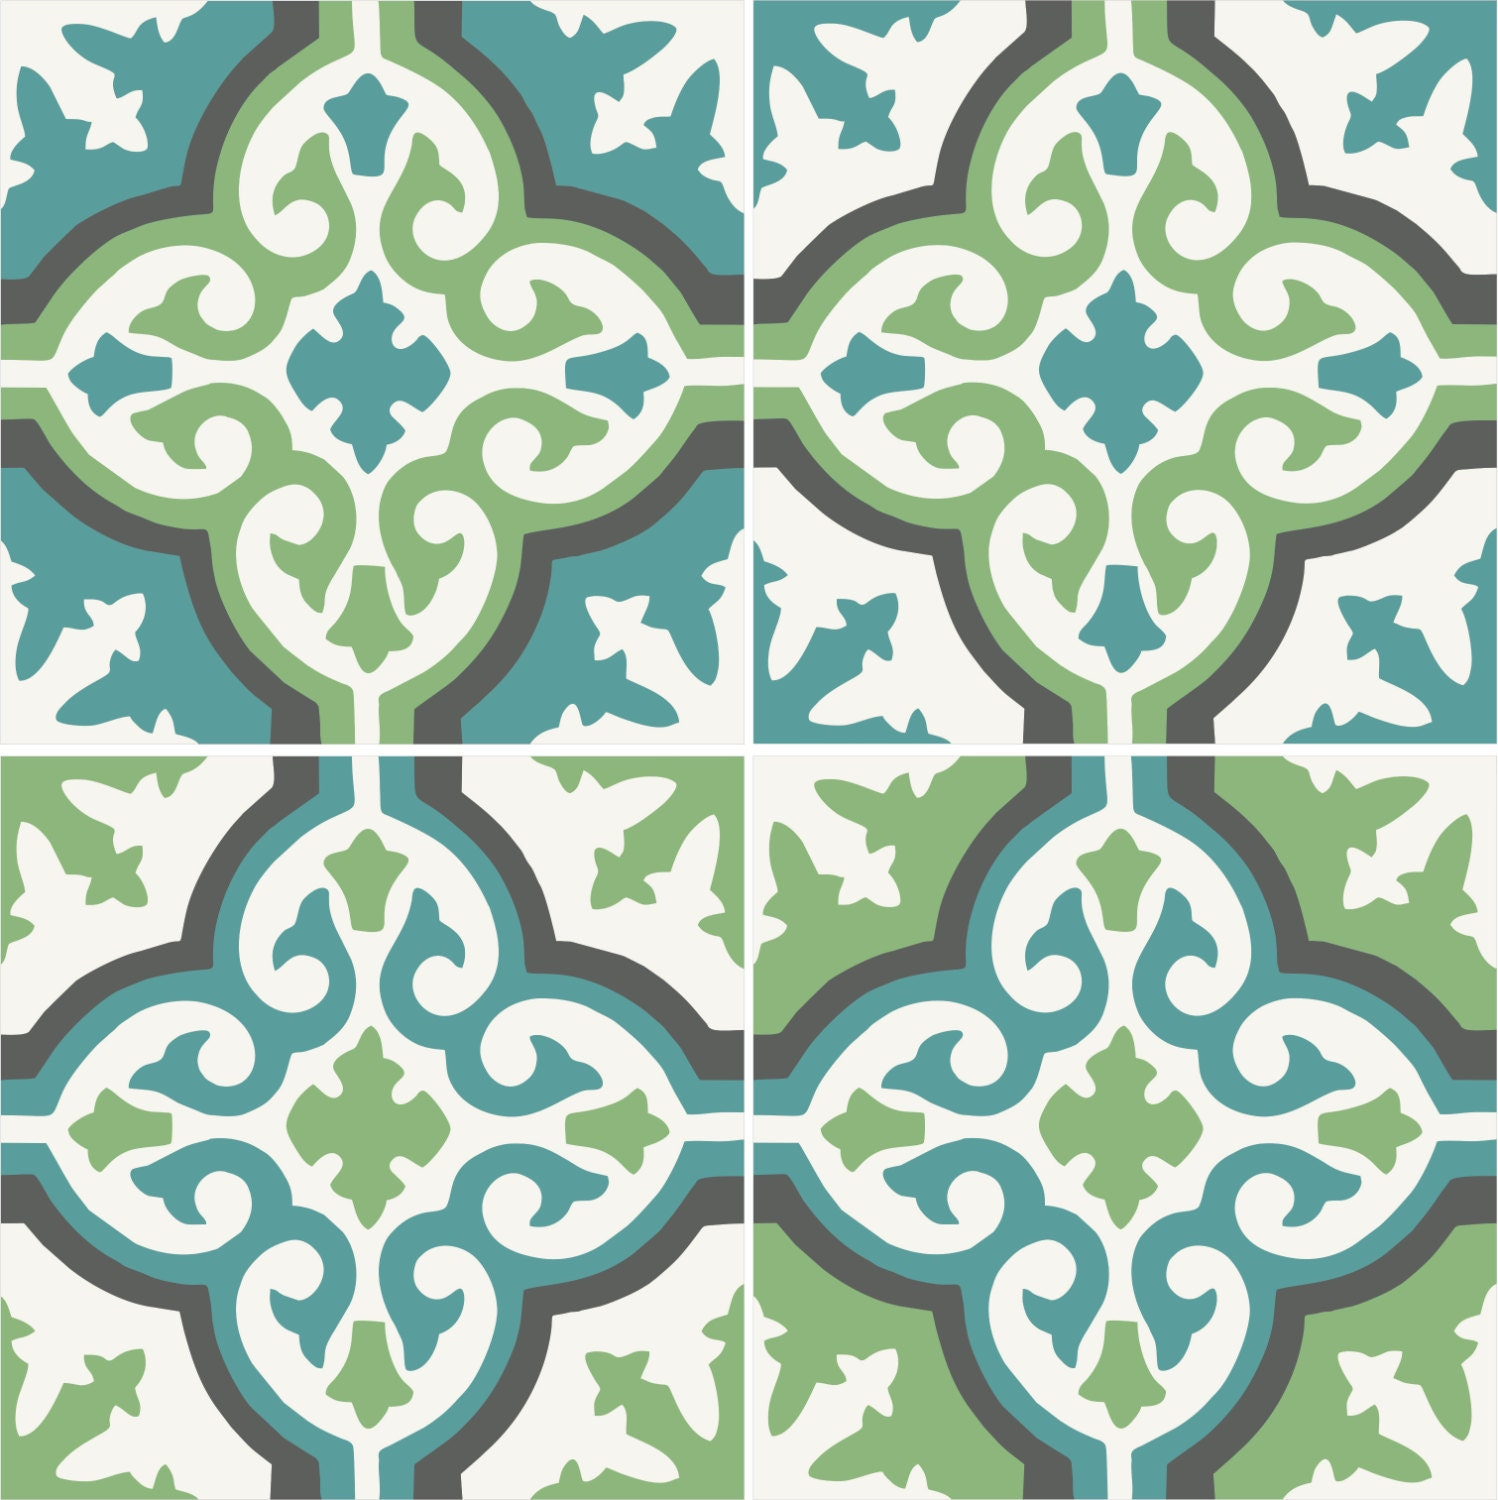 Olive u0026 Teal Morrocan style tile/wall stickers: 4 by Bleucoin